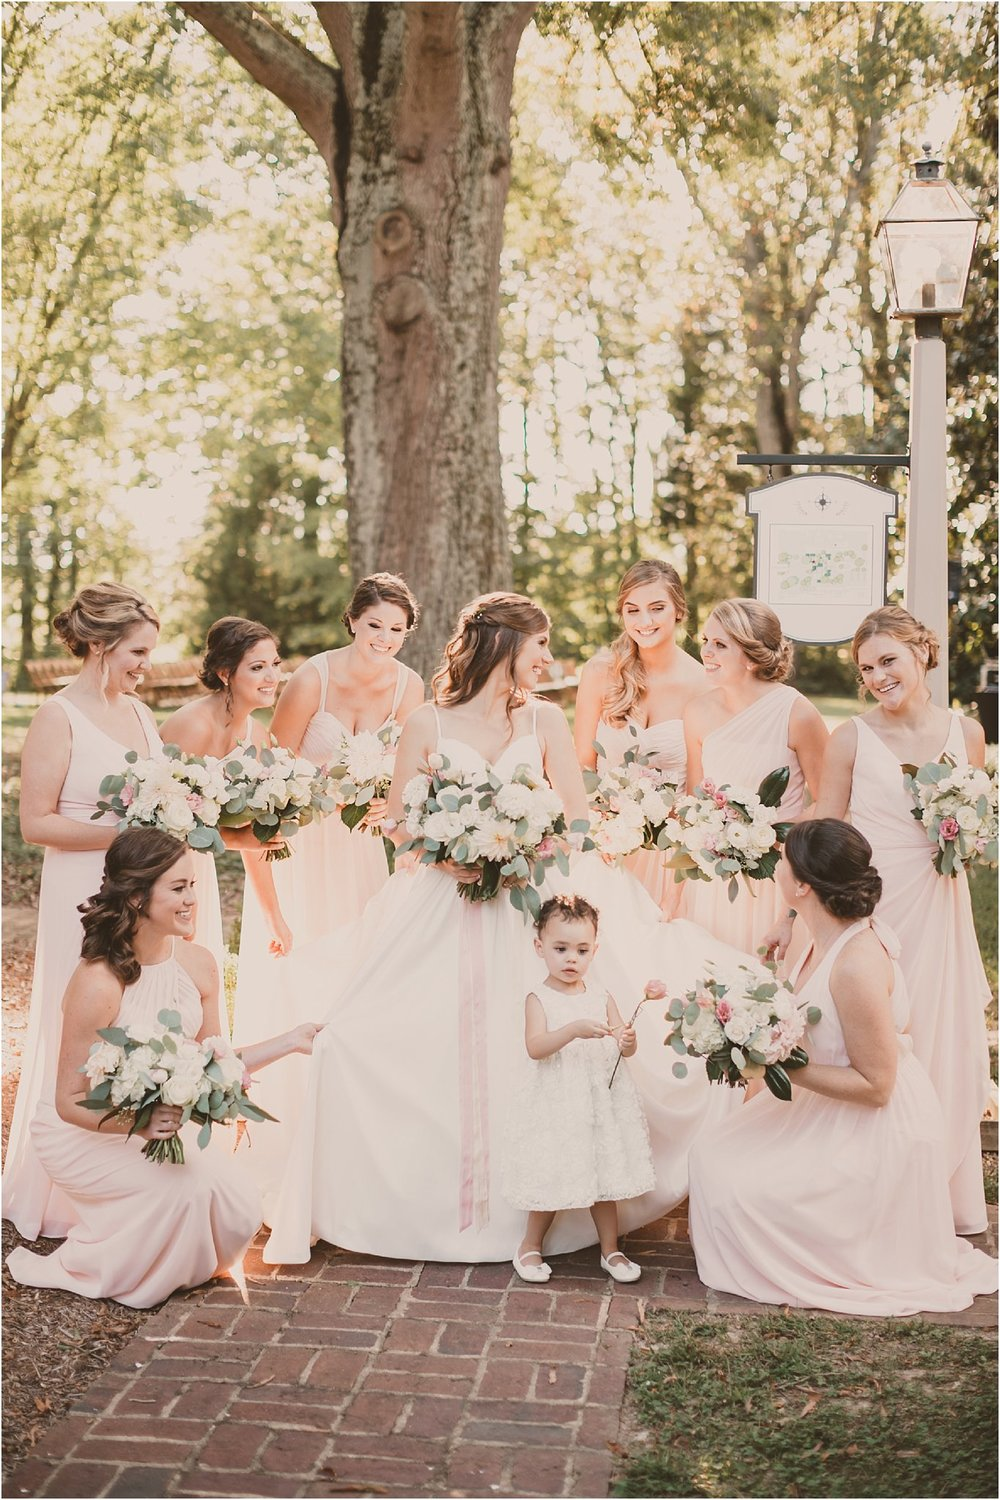 PattengalePhotography_BohoWedding_RichmondVirginia_Photographer_SevenSprings_Manor_Estate_Wedding_Hannah&Thomas_Elegant_Fall_Bohemian_blush_gold_farm__0040.jpg